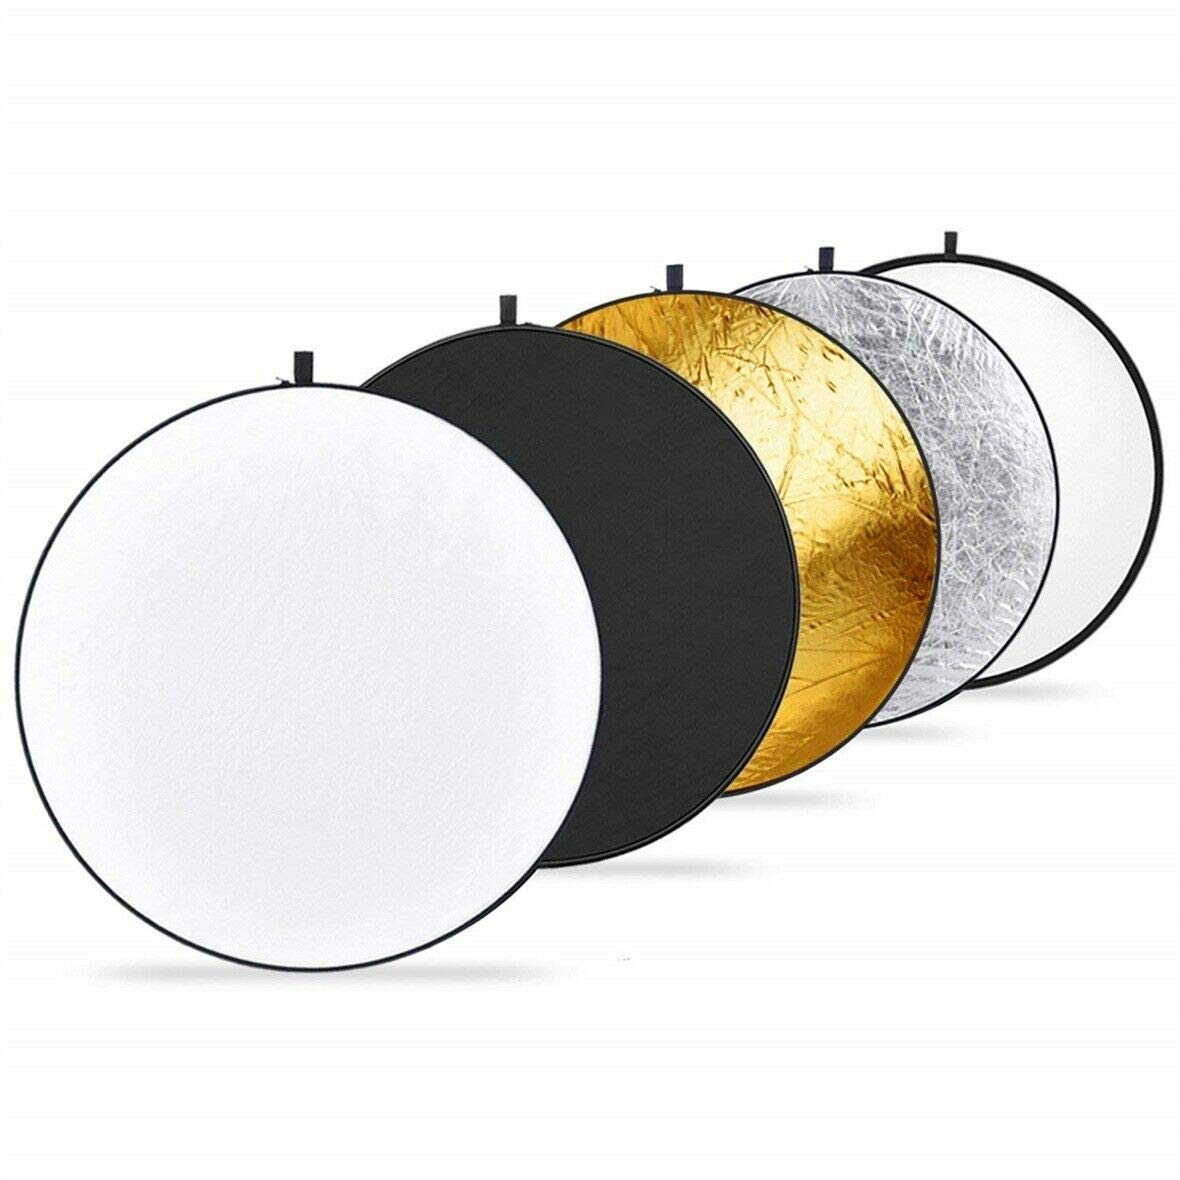 ePhoto Collapsible Photo Photography Video Studio Round Reflector Disc REF42 by ePhoto